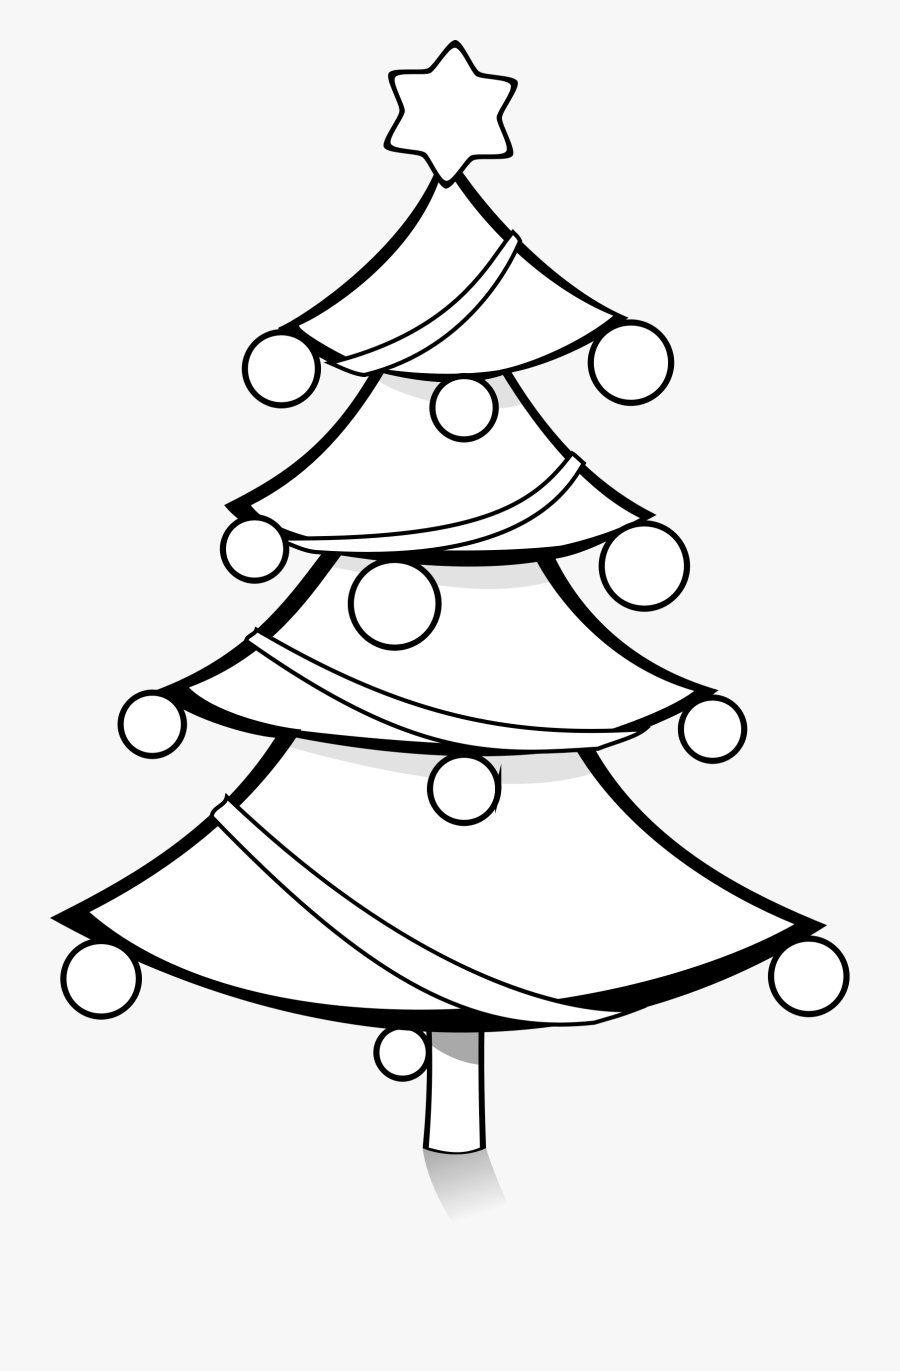 Christmas Tree Black And White Black And White Xmas - Christmas Tree Coloring Clipart, Transparent Clipart